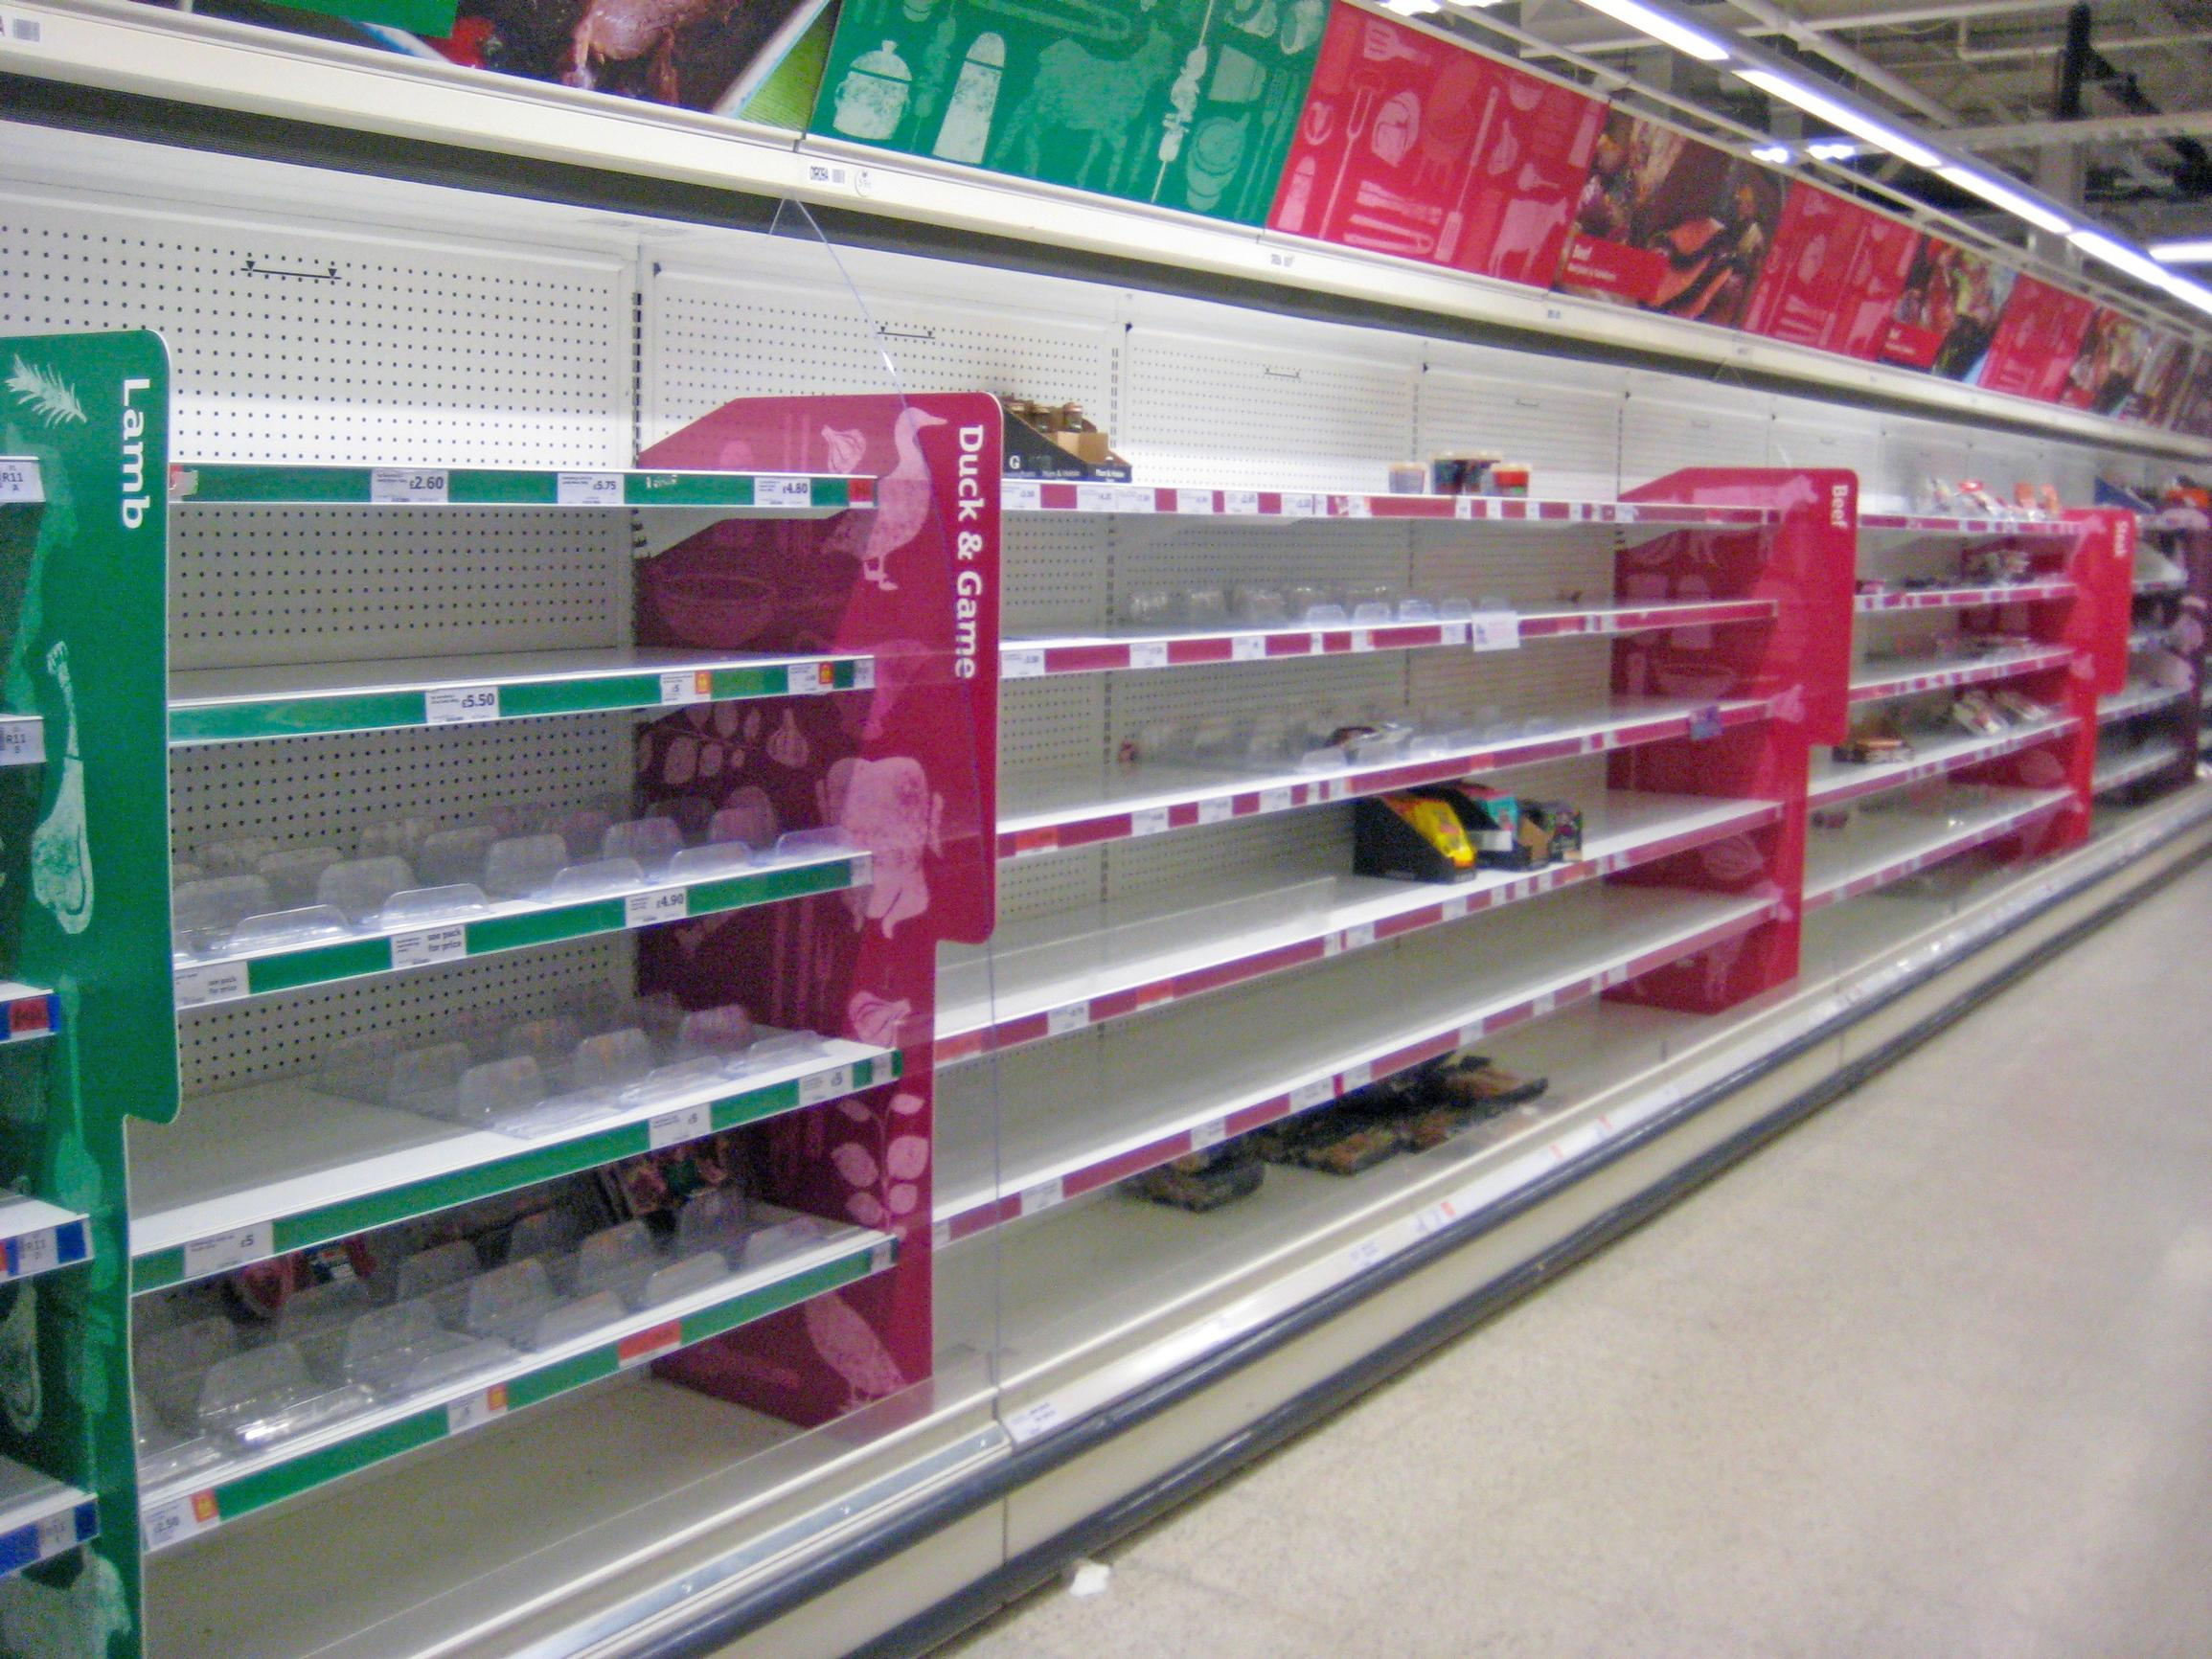 Panic-buying has caused supermarkets to run out of foods